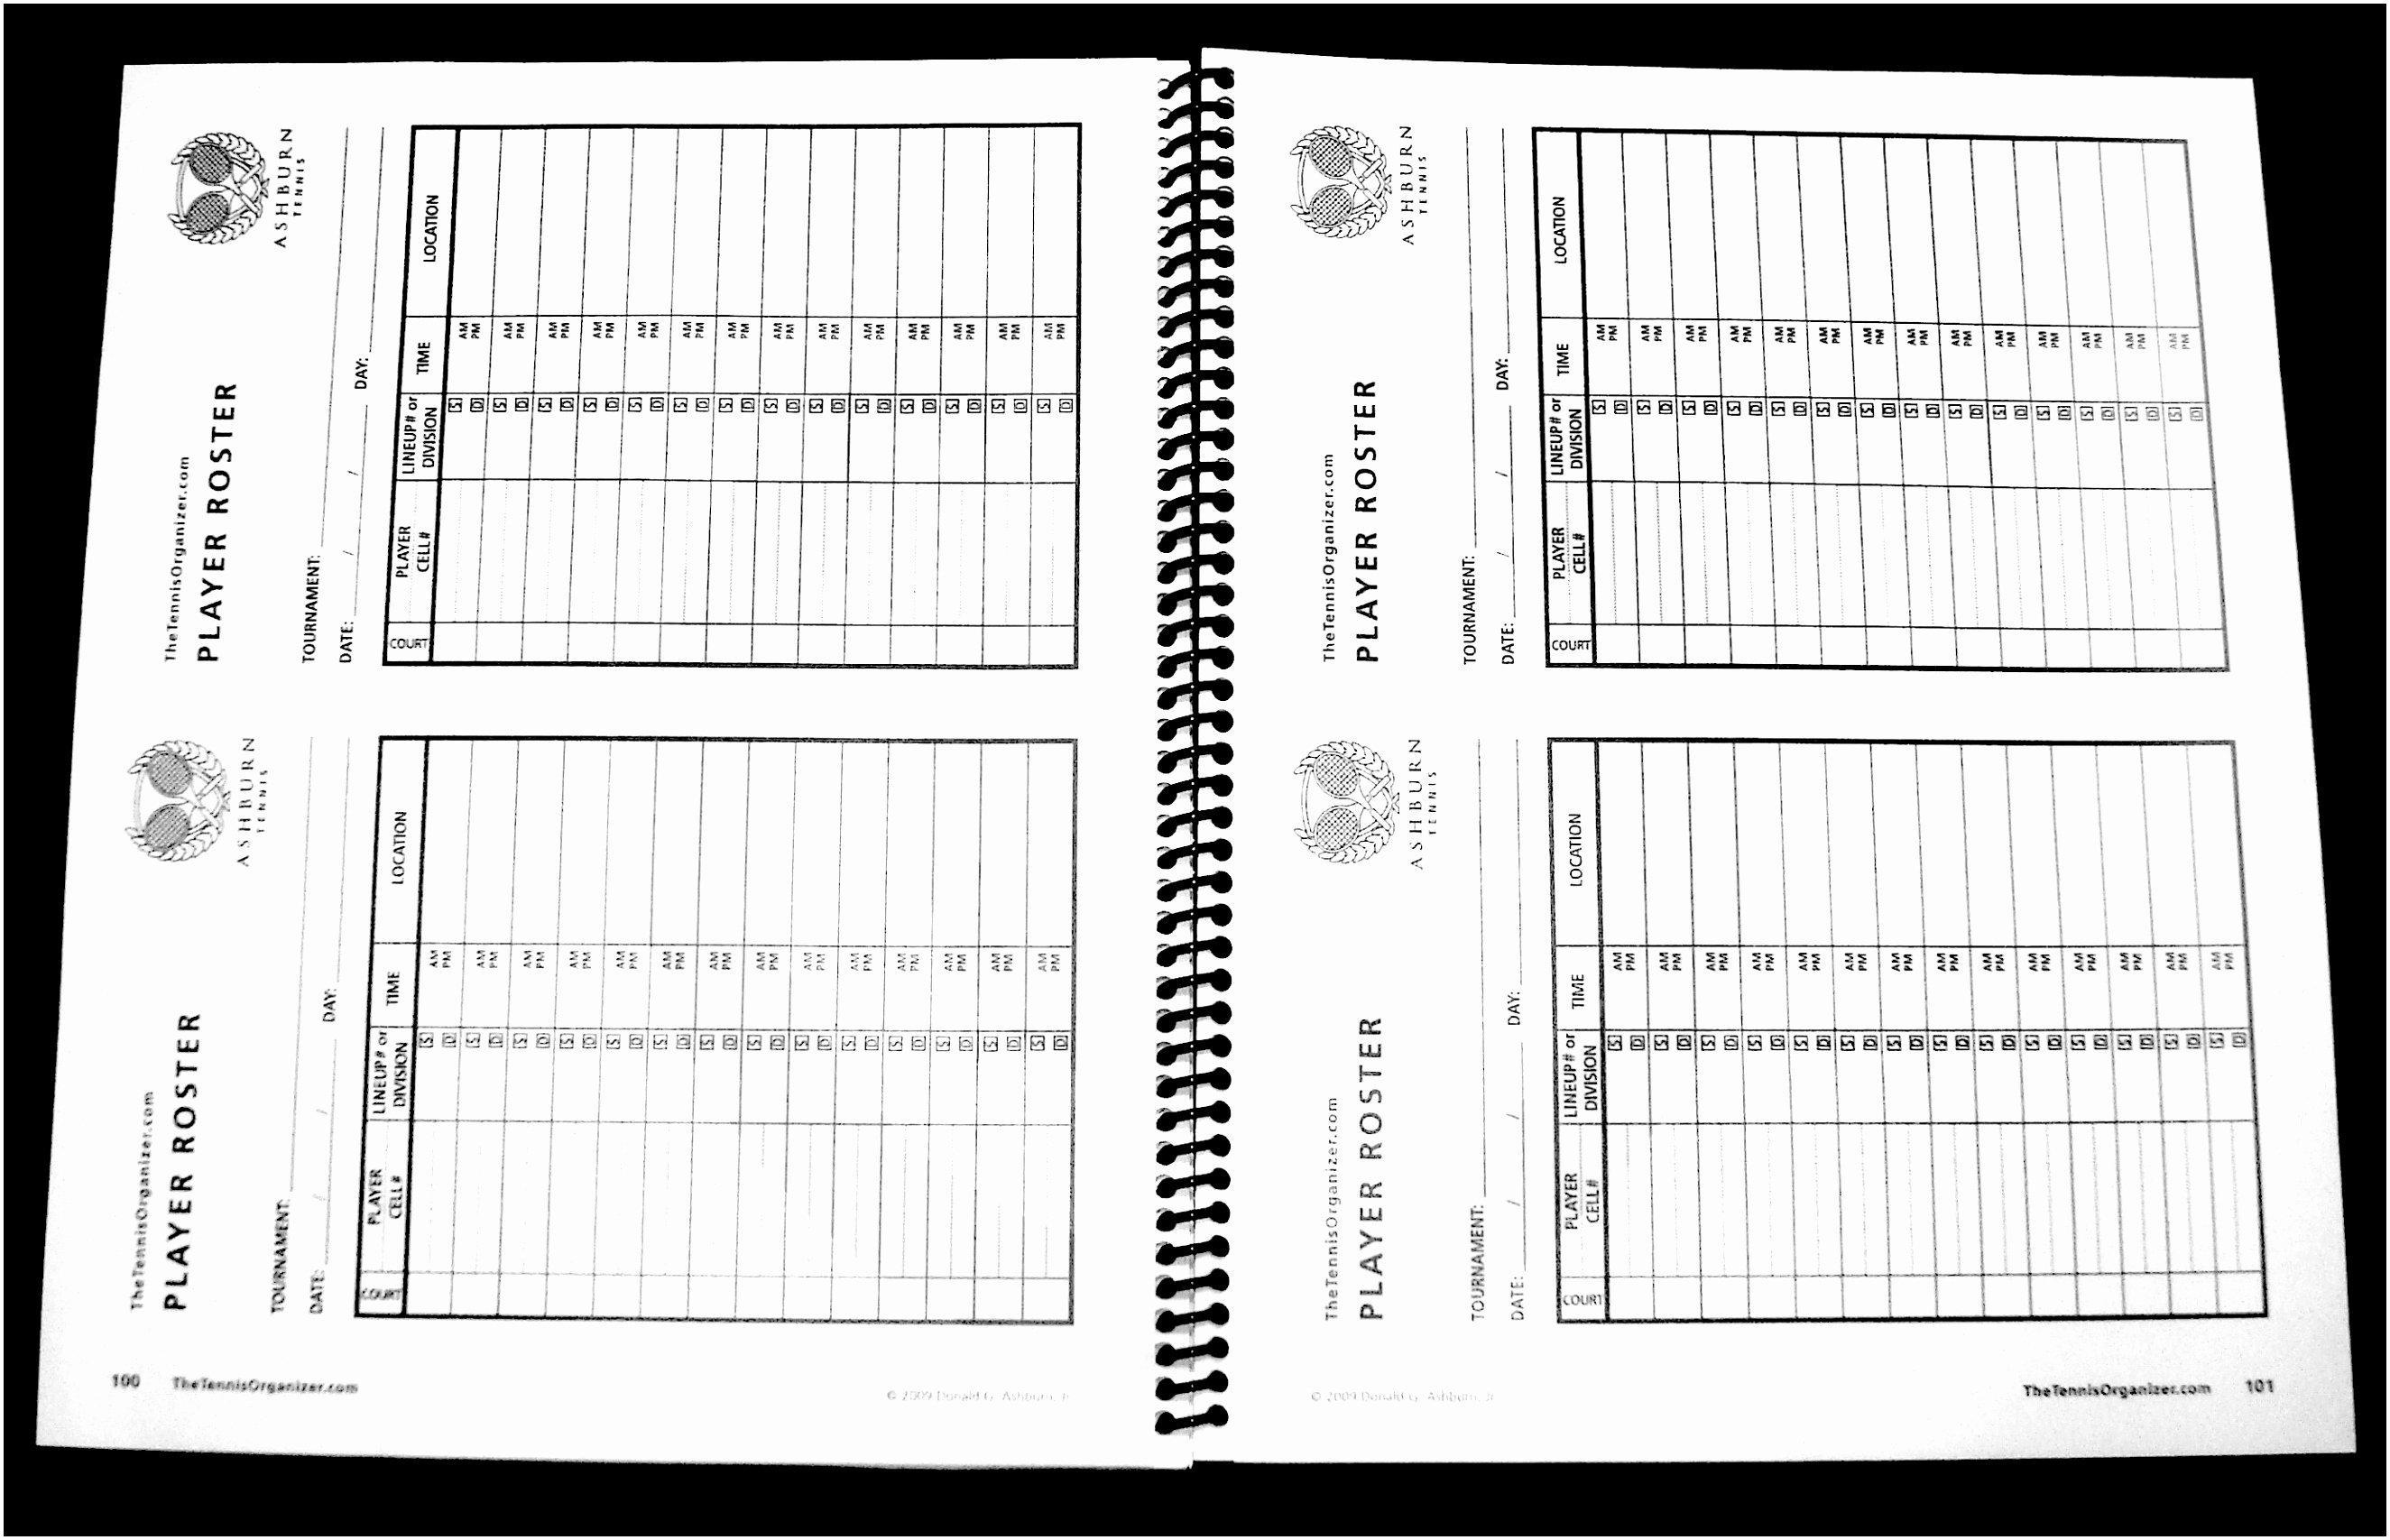 Football Depth Chart Template Excel Awesome 5 Printable Football Depth Chart Template Yaouu